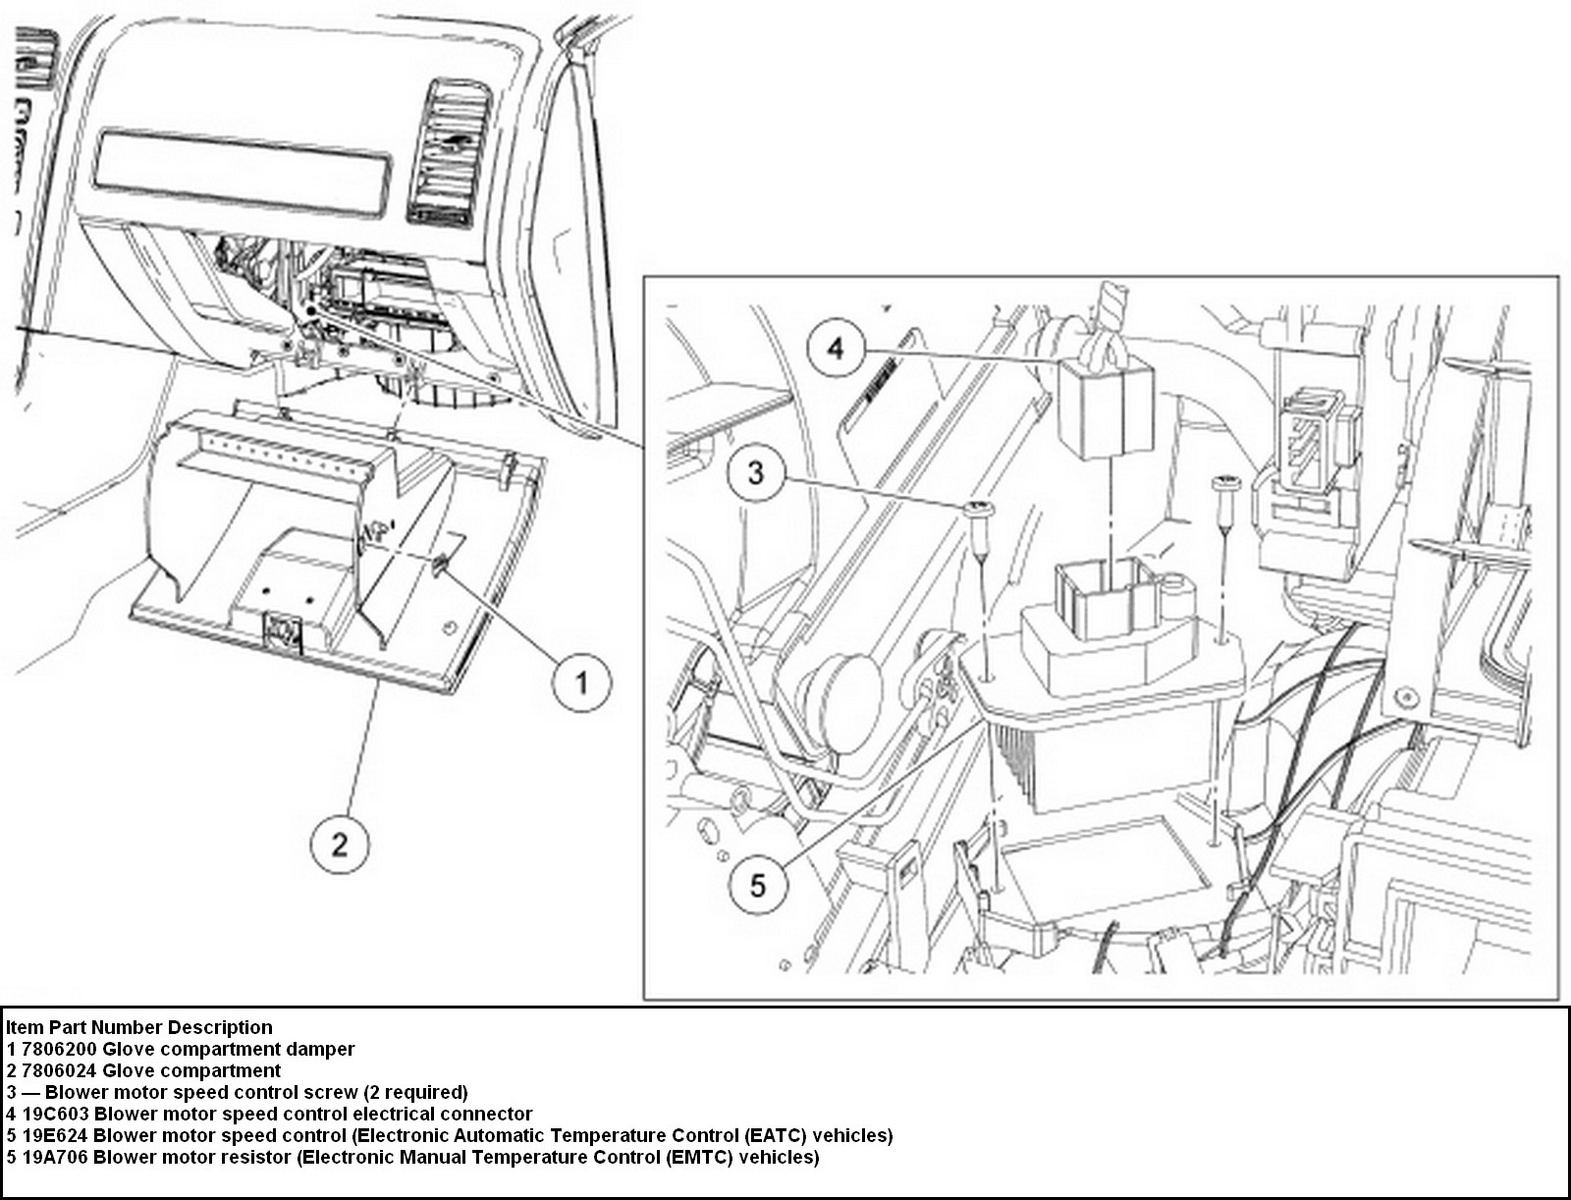 2002 Buick Lesabre Ignition Wiring Diagram further 2013 Honda Accord Turn Signal Fuse Location together with 1990 Honda Acura Integra Starting besides Bcm Location 2011 F350 likewise 1995 Jeep Grand Cherokees Instrument. on fuse box car audio